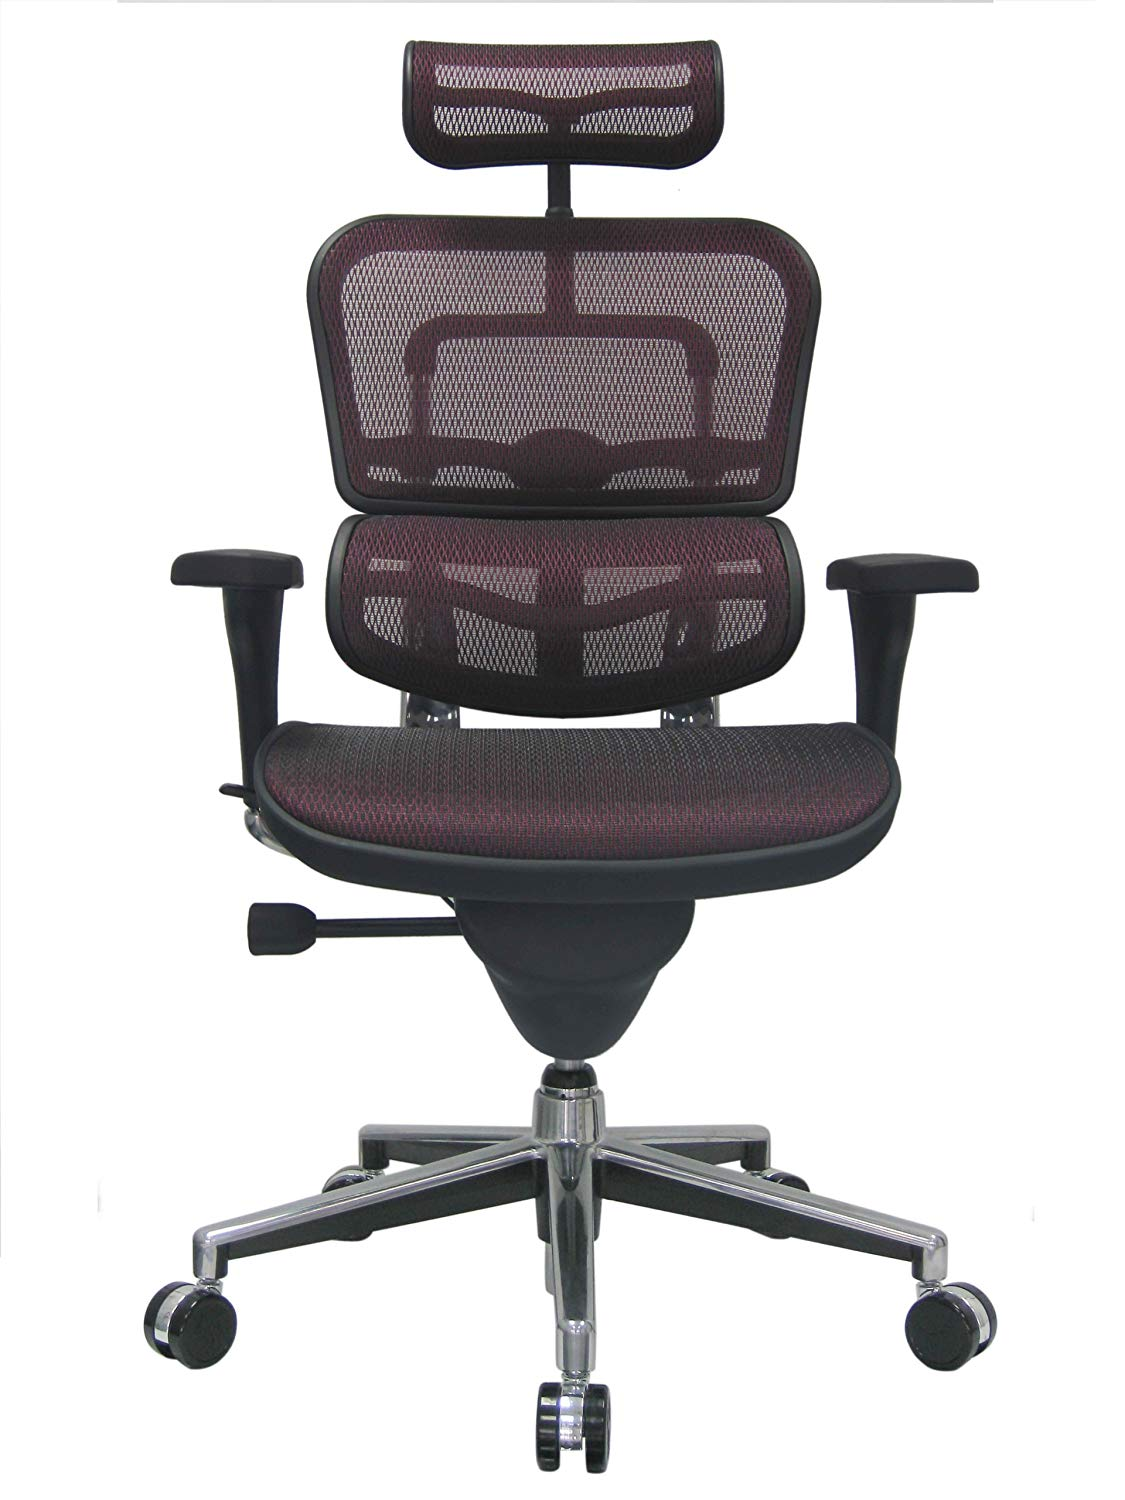 <font color=#833737>ERGOHUMAN HIGH-BACK MESH CHAIR EH-ME7ERG PLUM RED</font>